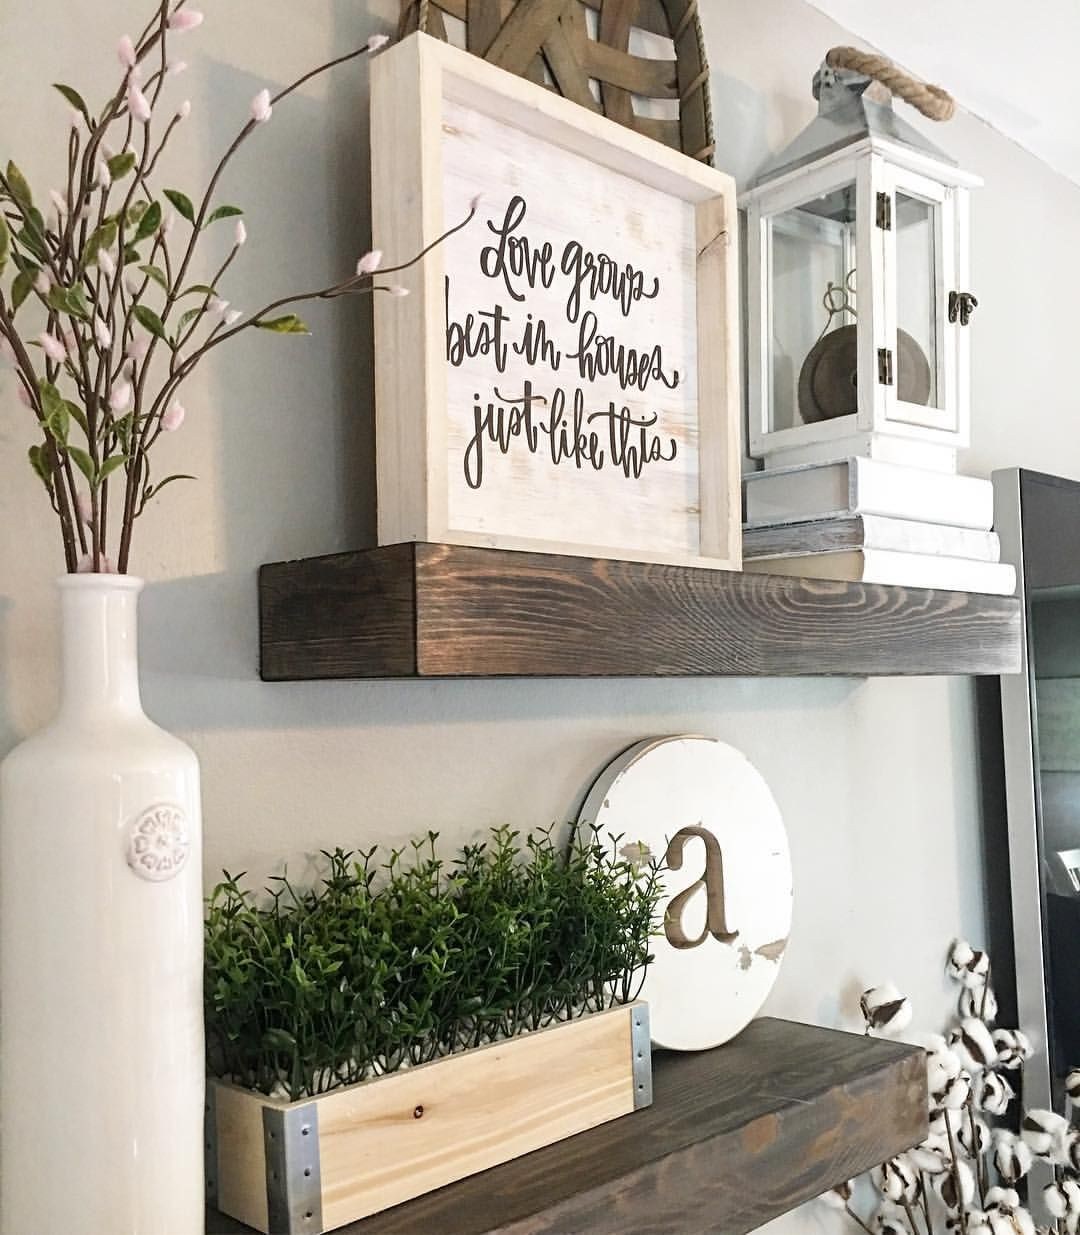 Floating shelves wood shelves farmhouse decor farmhouse New farmhouse style